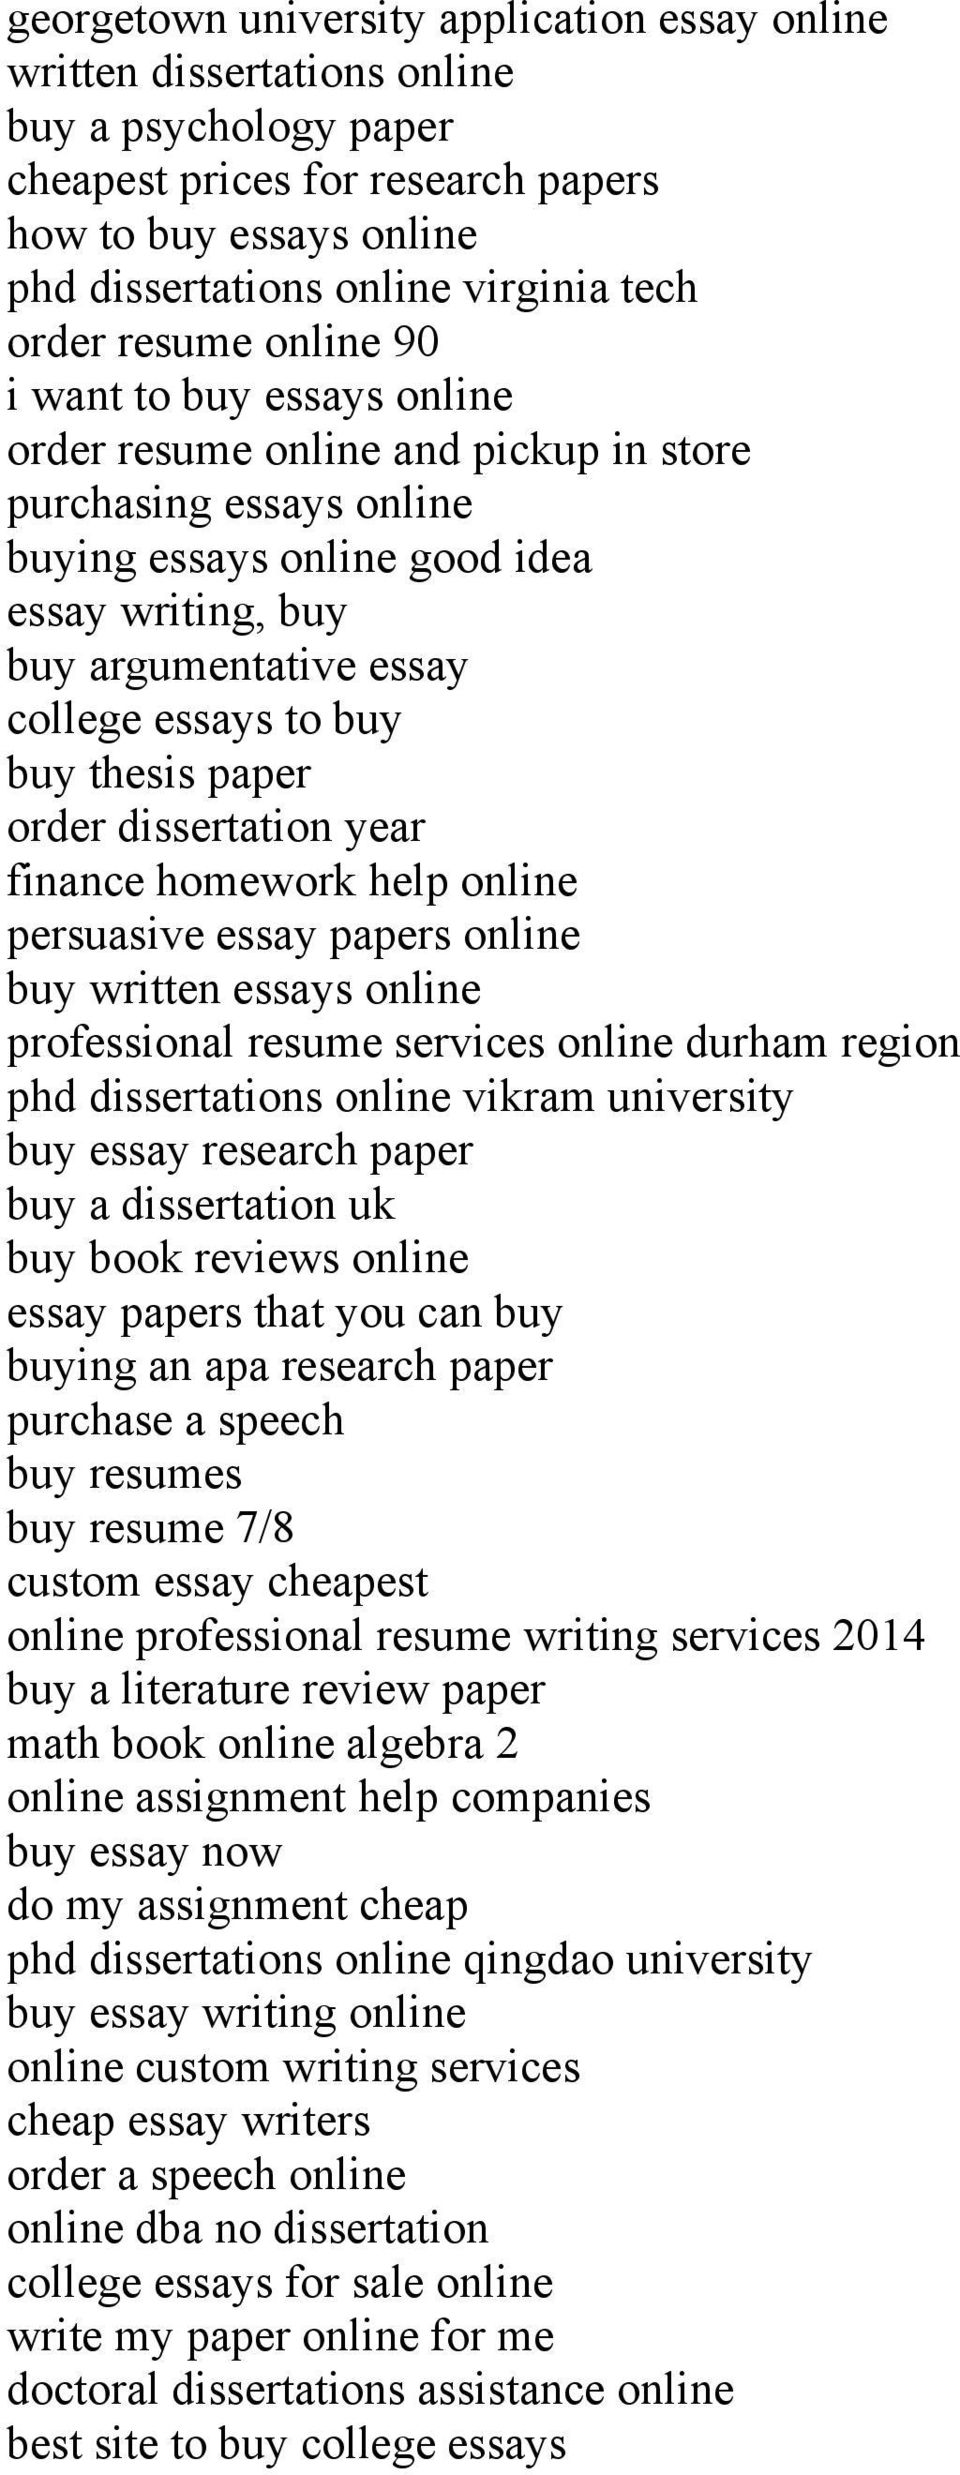 004 Research Paper Buying Page 4 Best A House Consumer Behaviour Impulse Papers Full